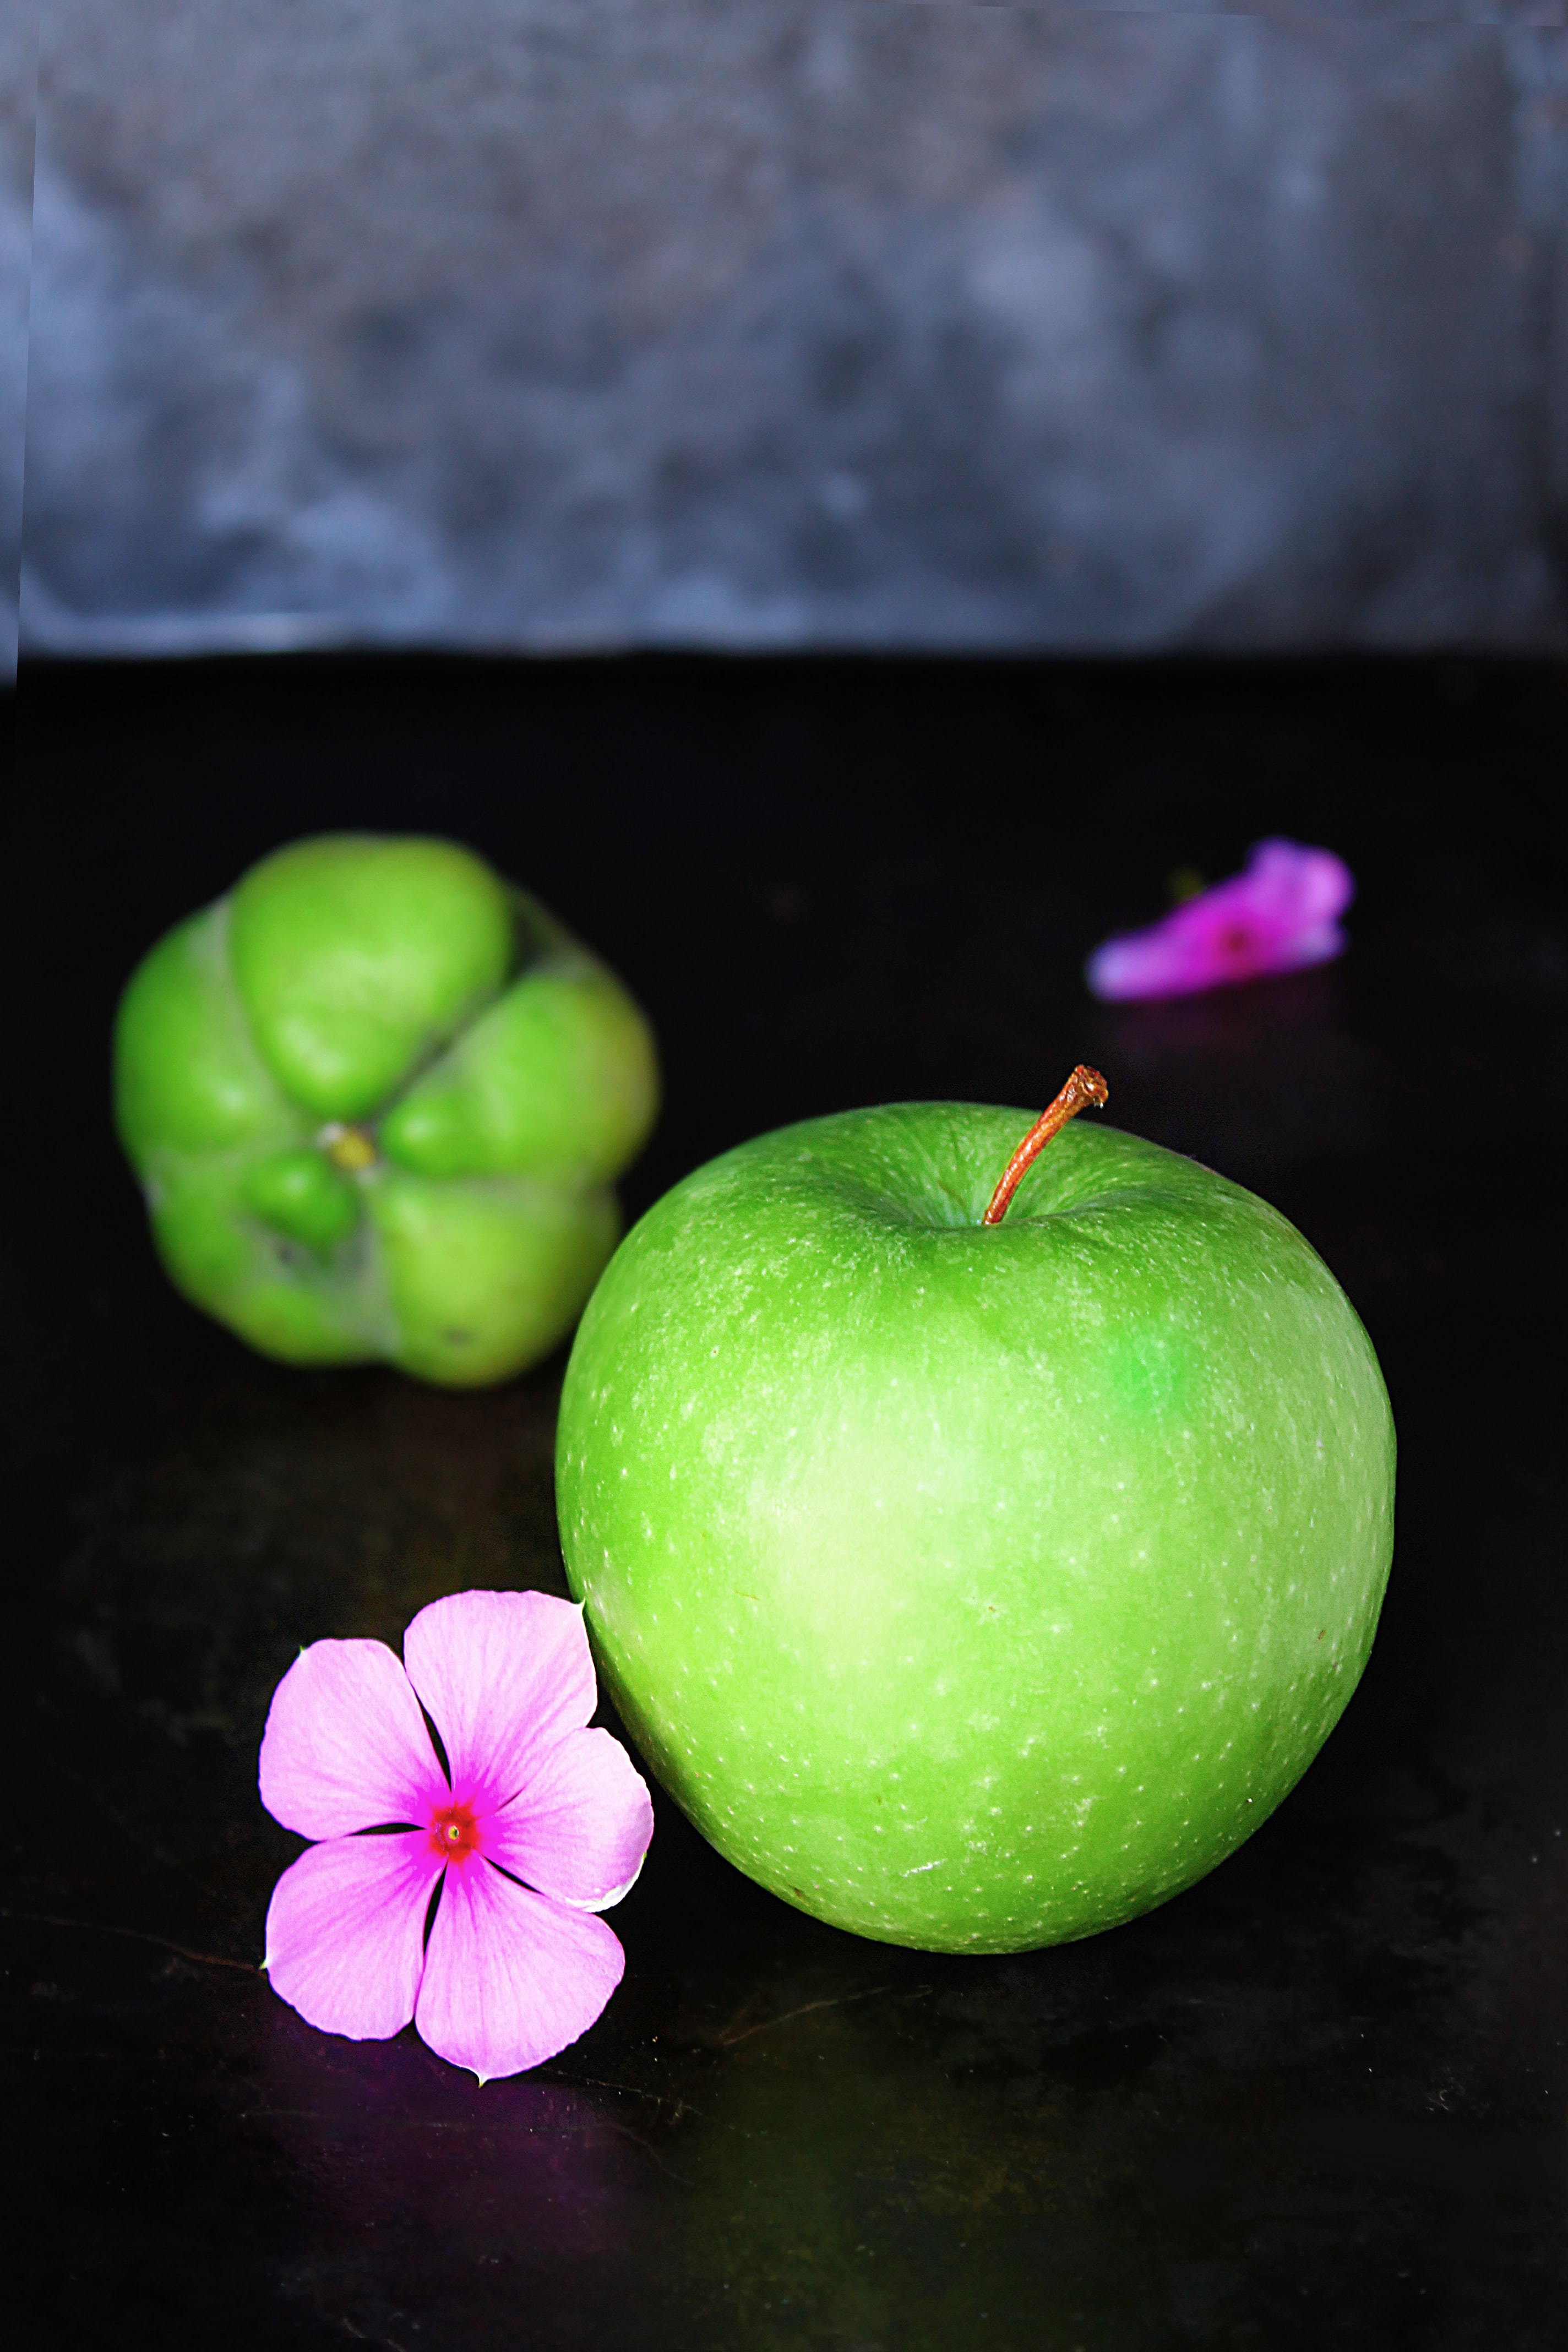 Fresh green granny smith apple next to purple flowers and a green fruit